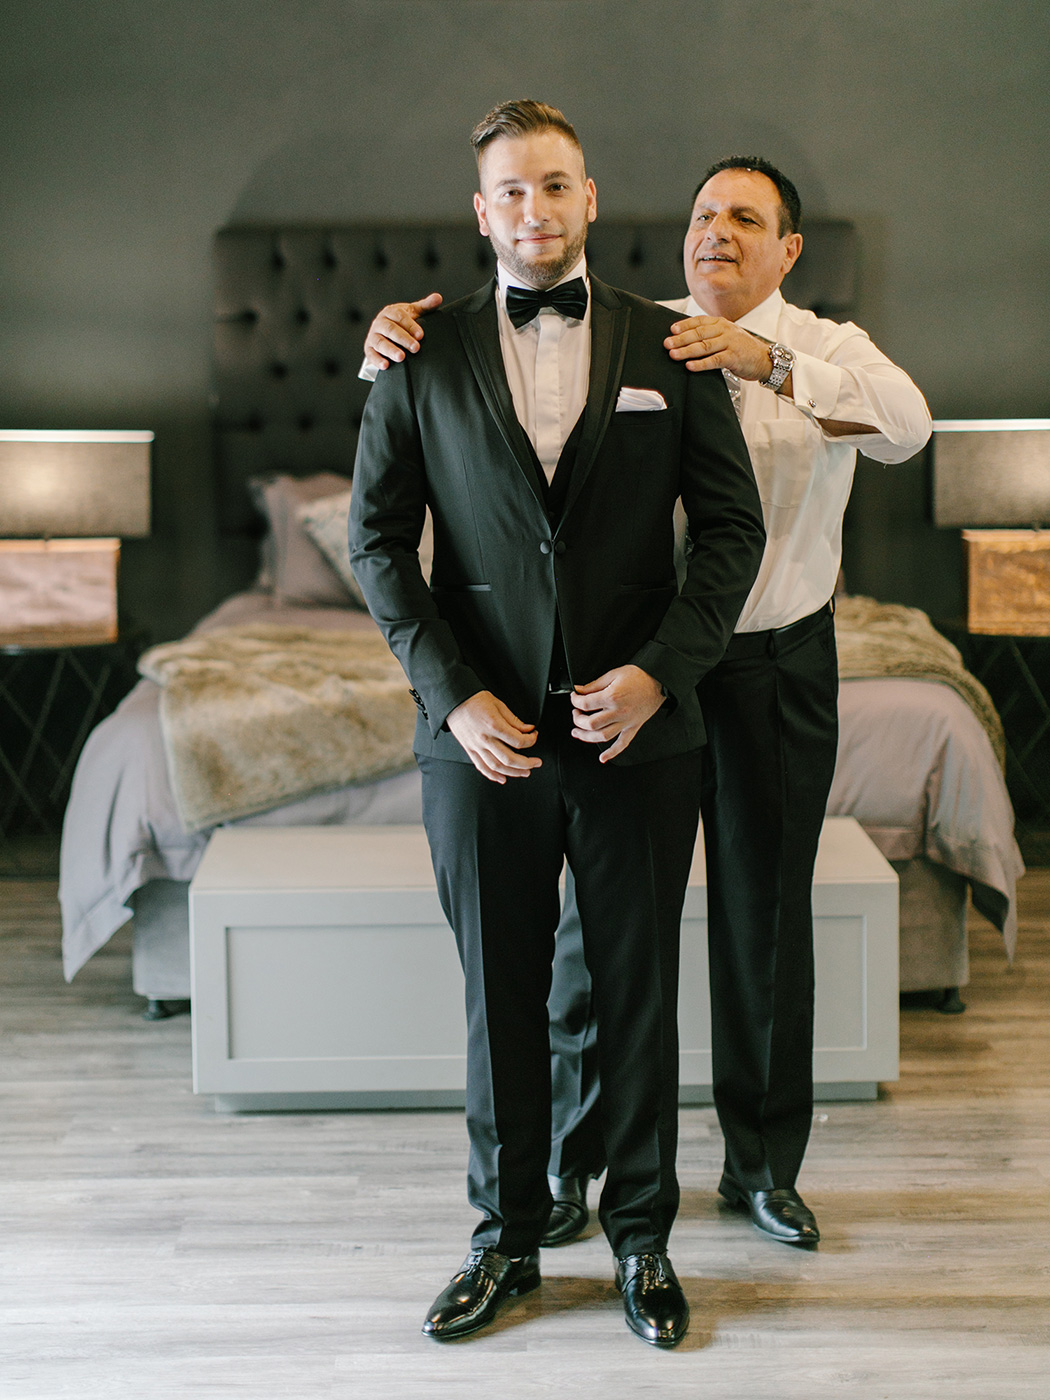 Father & Groom | Rensche Mari